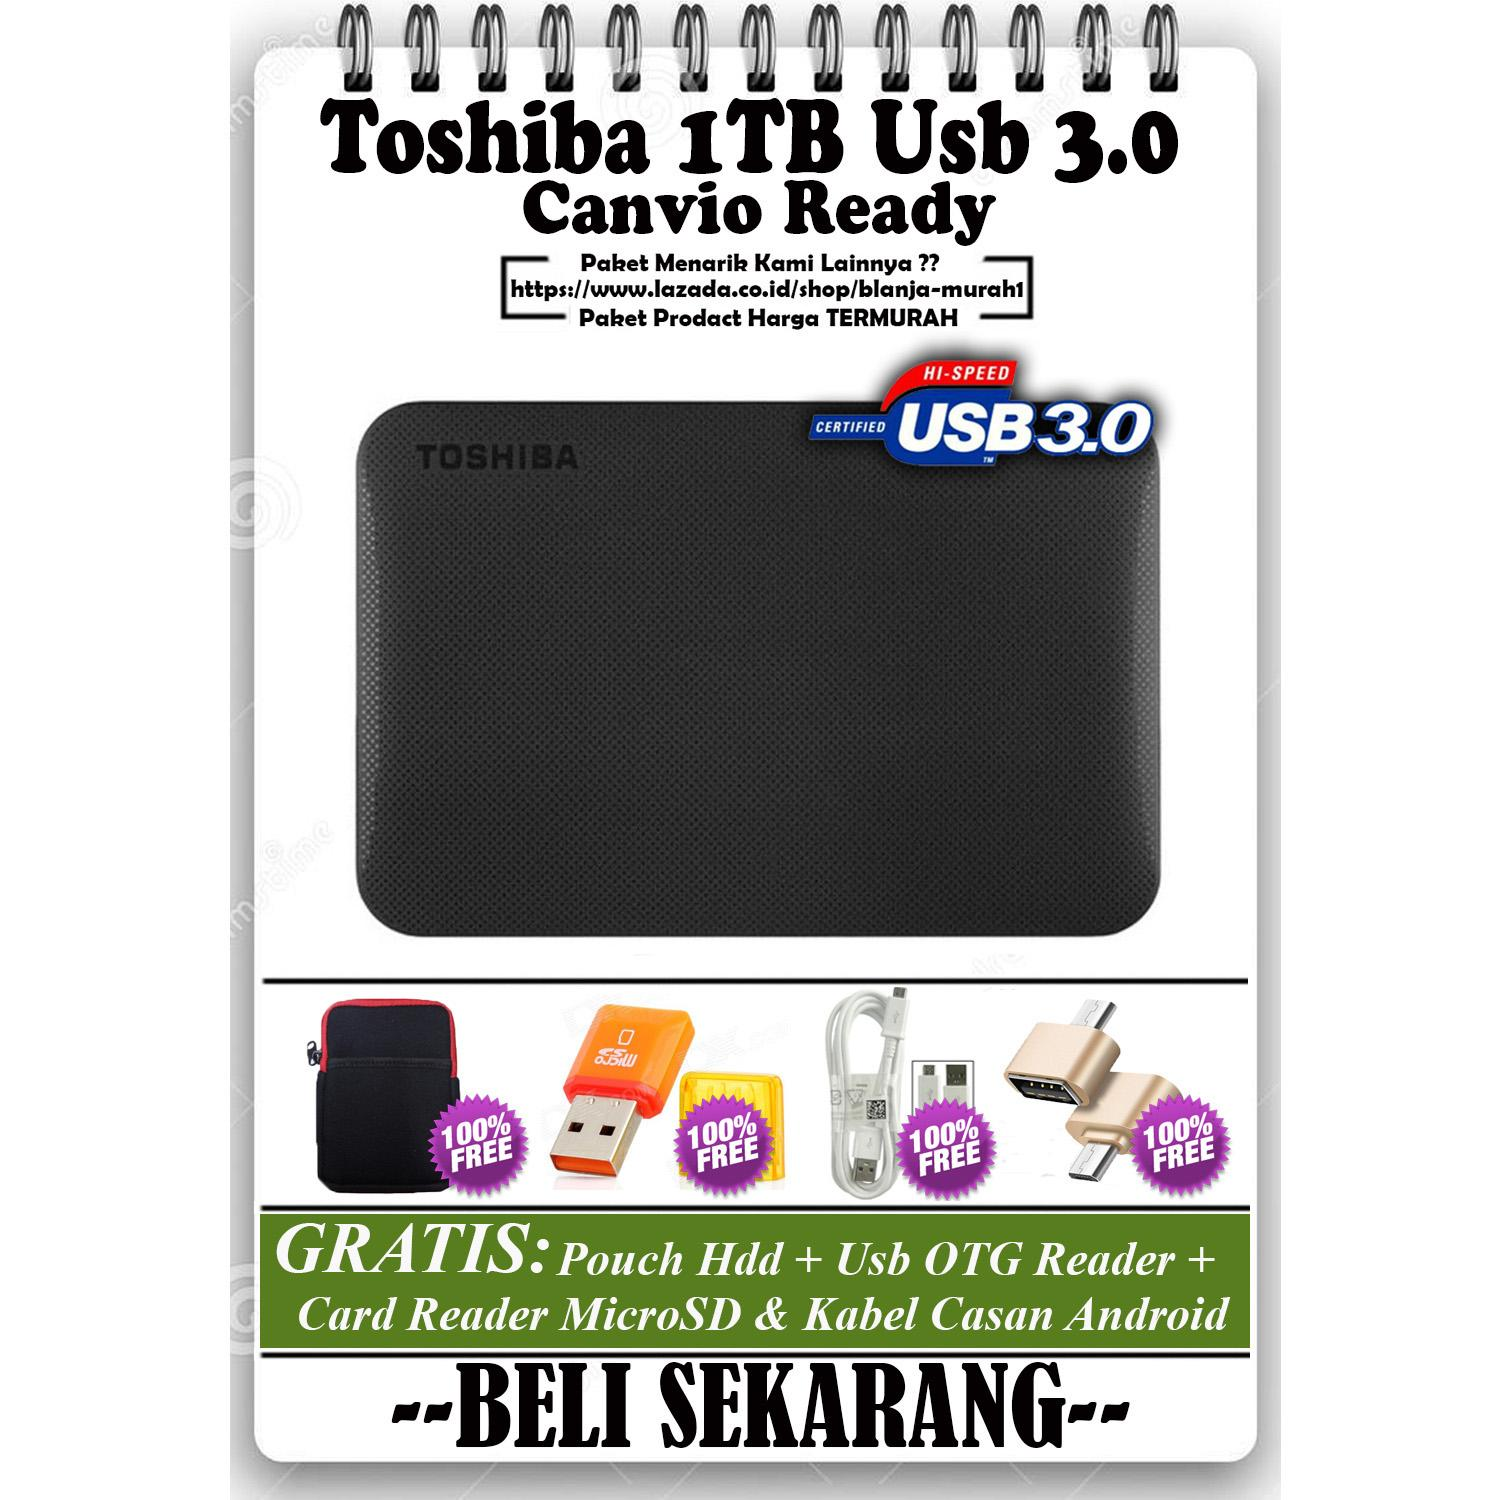 Toshiba Canvio Ready 1TB Harddisk External - GRATIS Pouch Harddisk + Kabel Charger Casan Android +